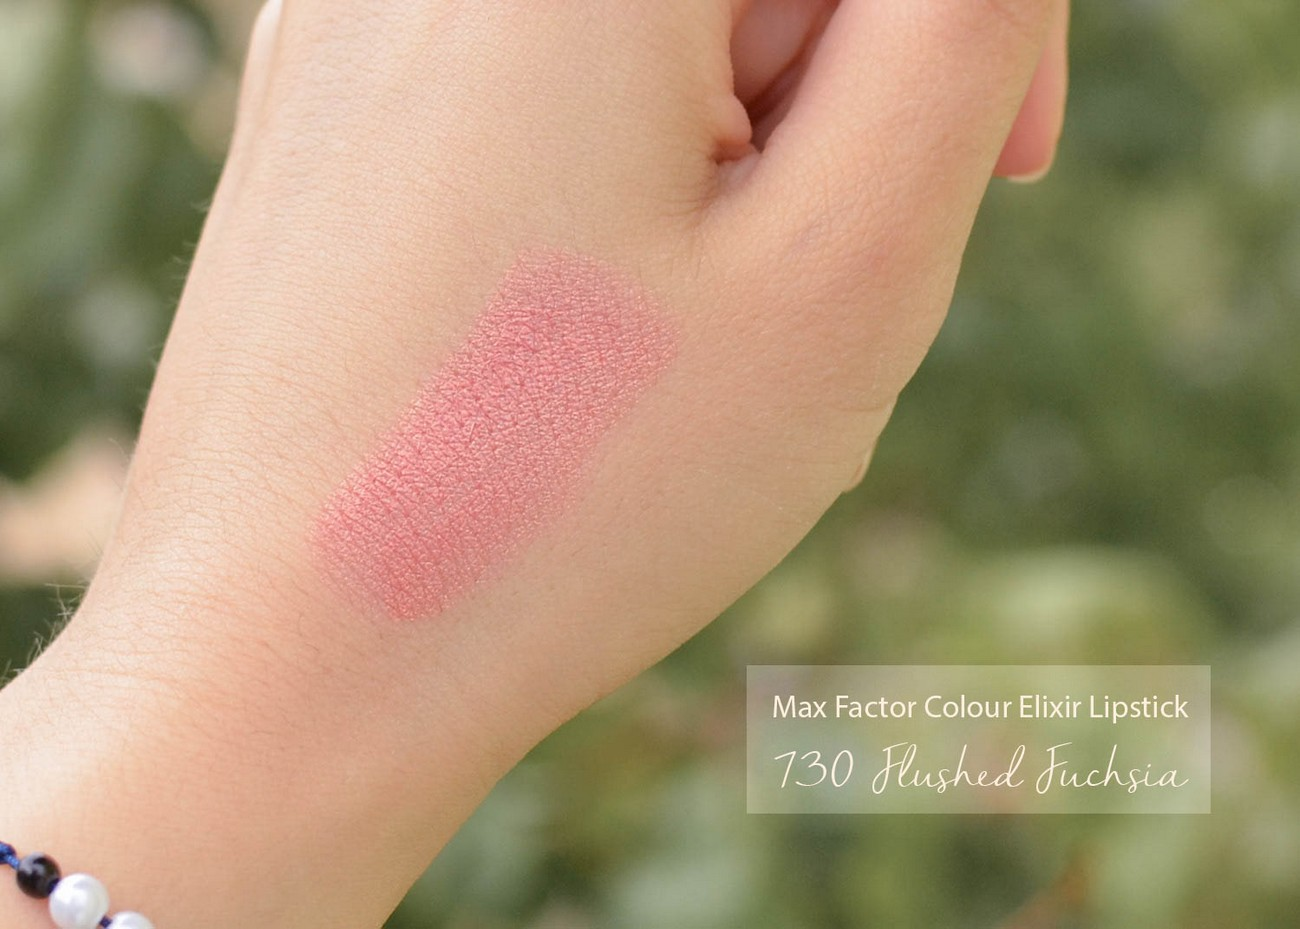 Max Factor Color Elixir Lipstick 730 Flushed Fuchsia